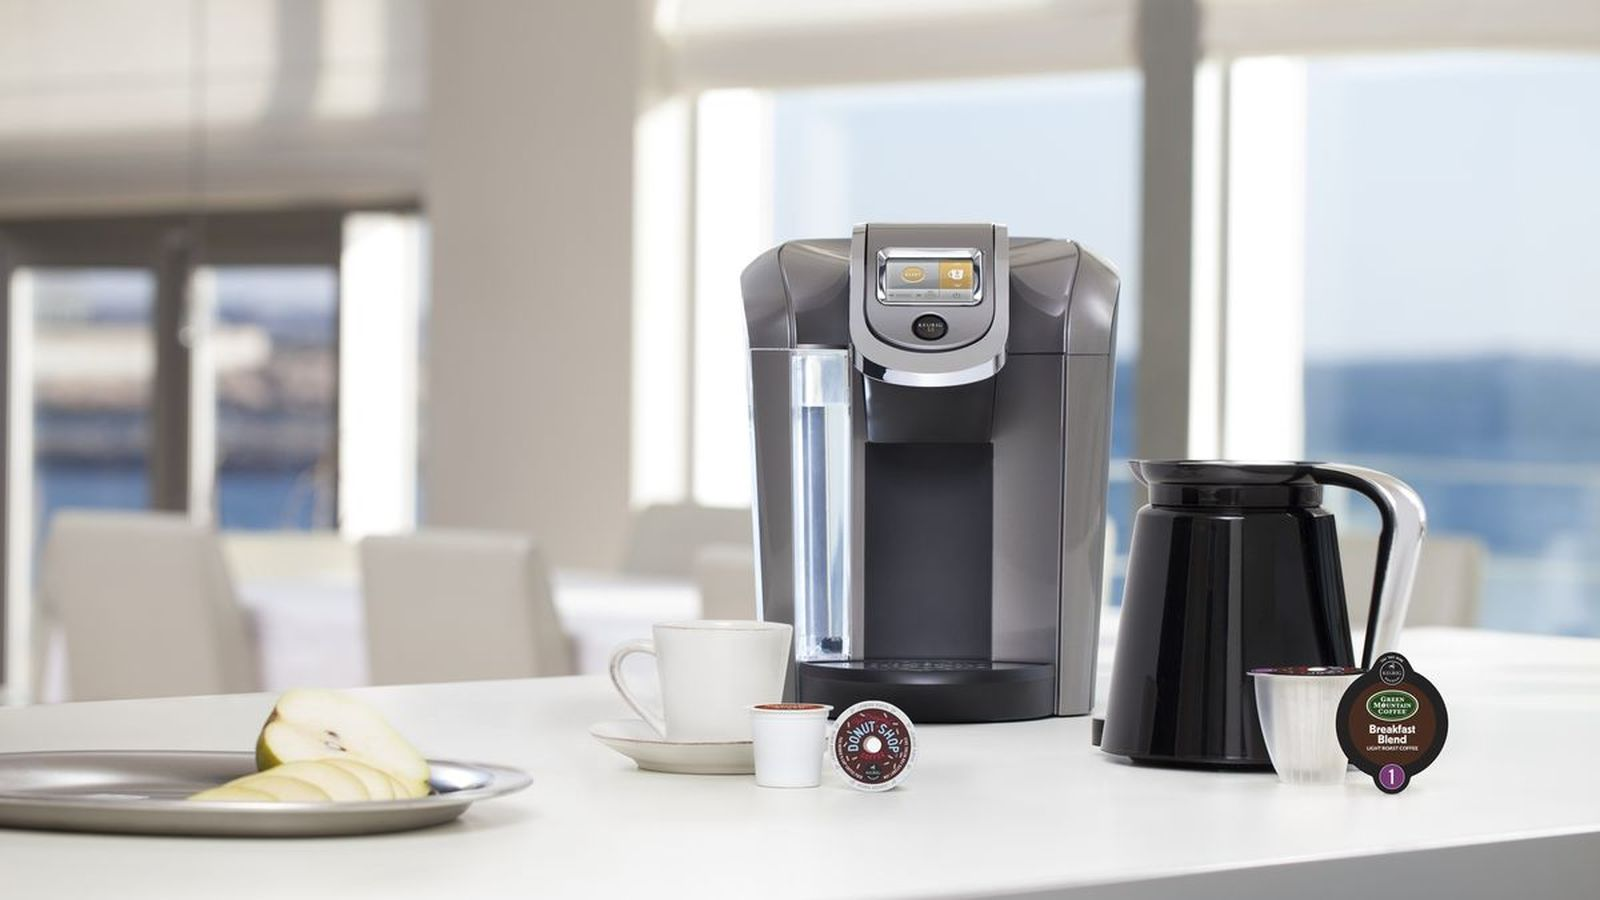 keurig coffee makers Keurig K Cup Coffee Maker Reviews